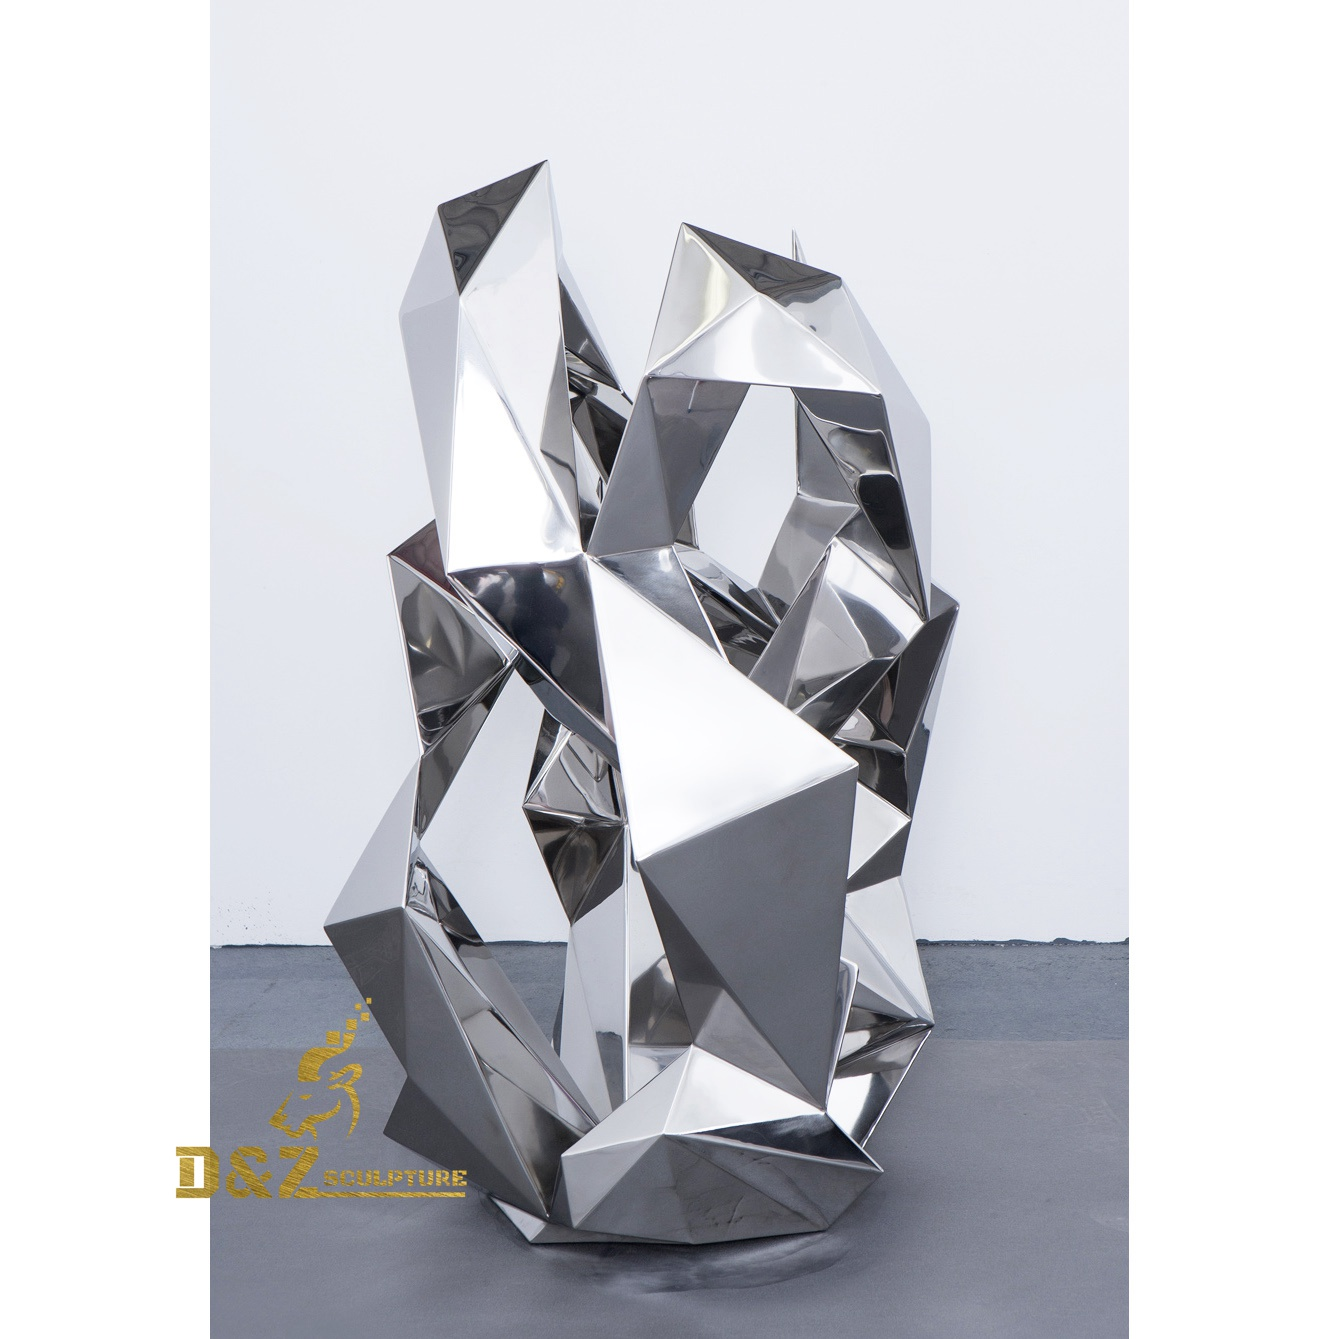 Abstract sculpture of stainless steel